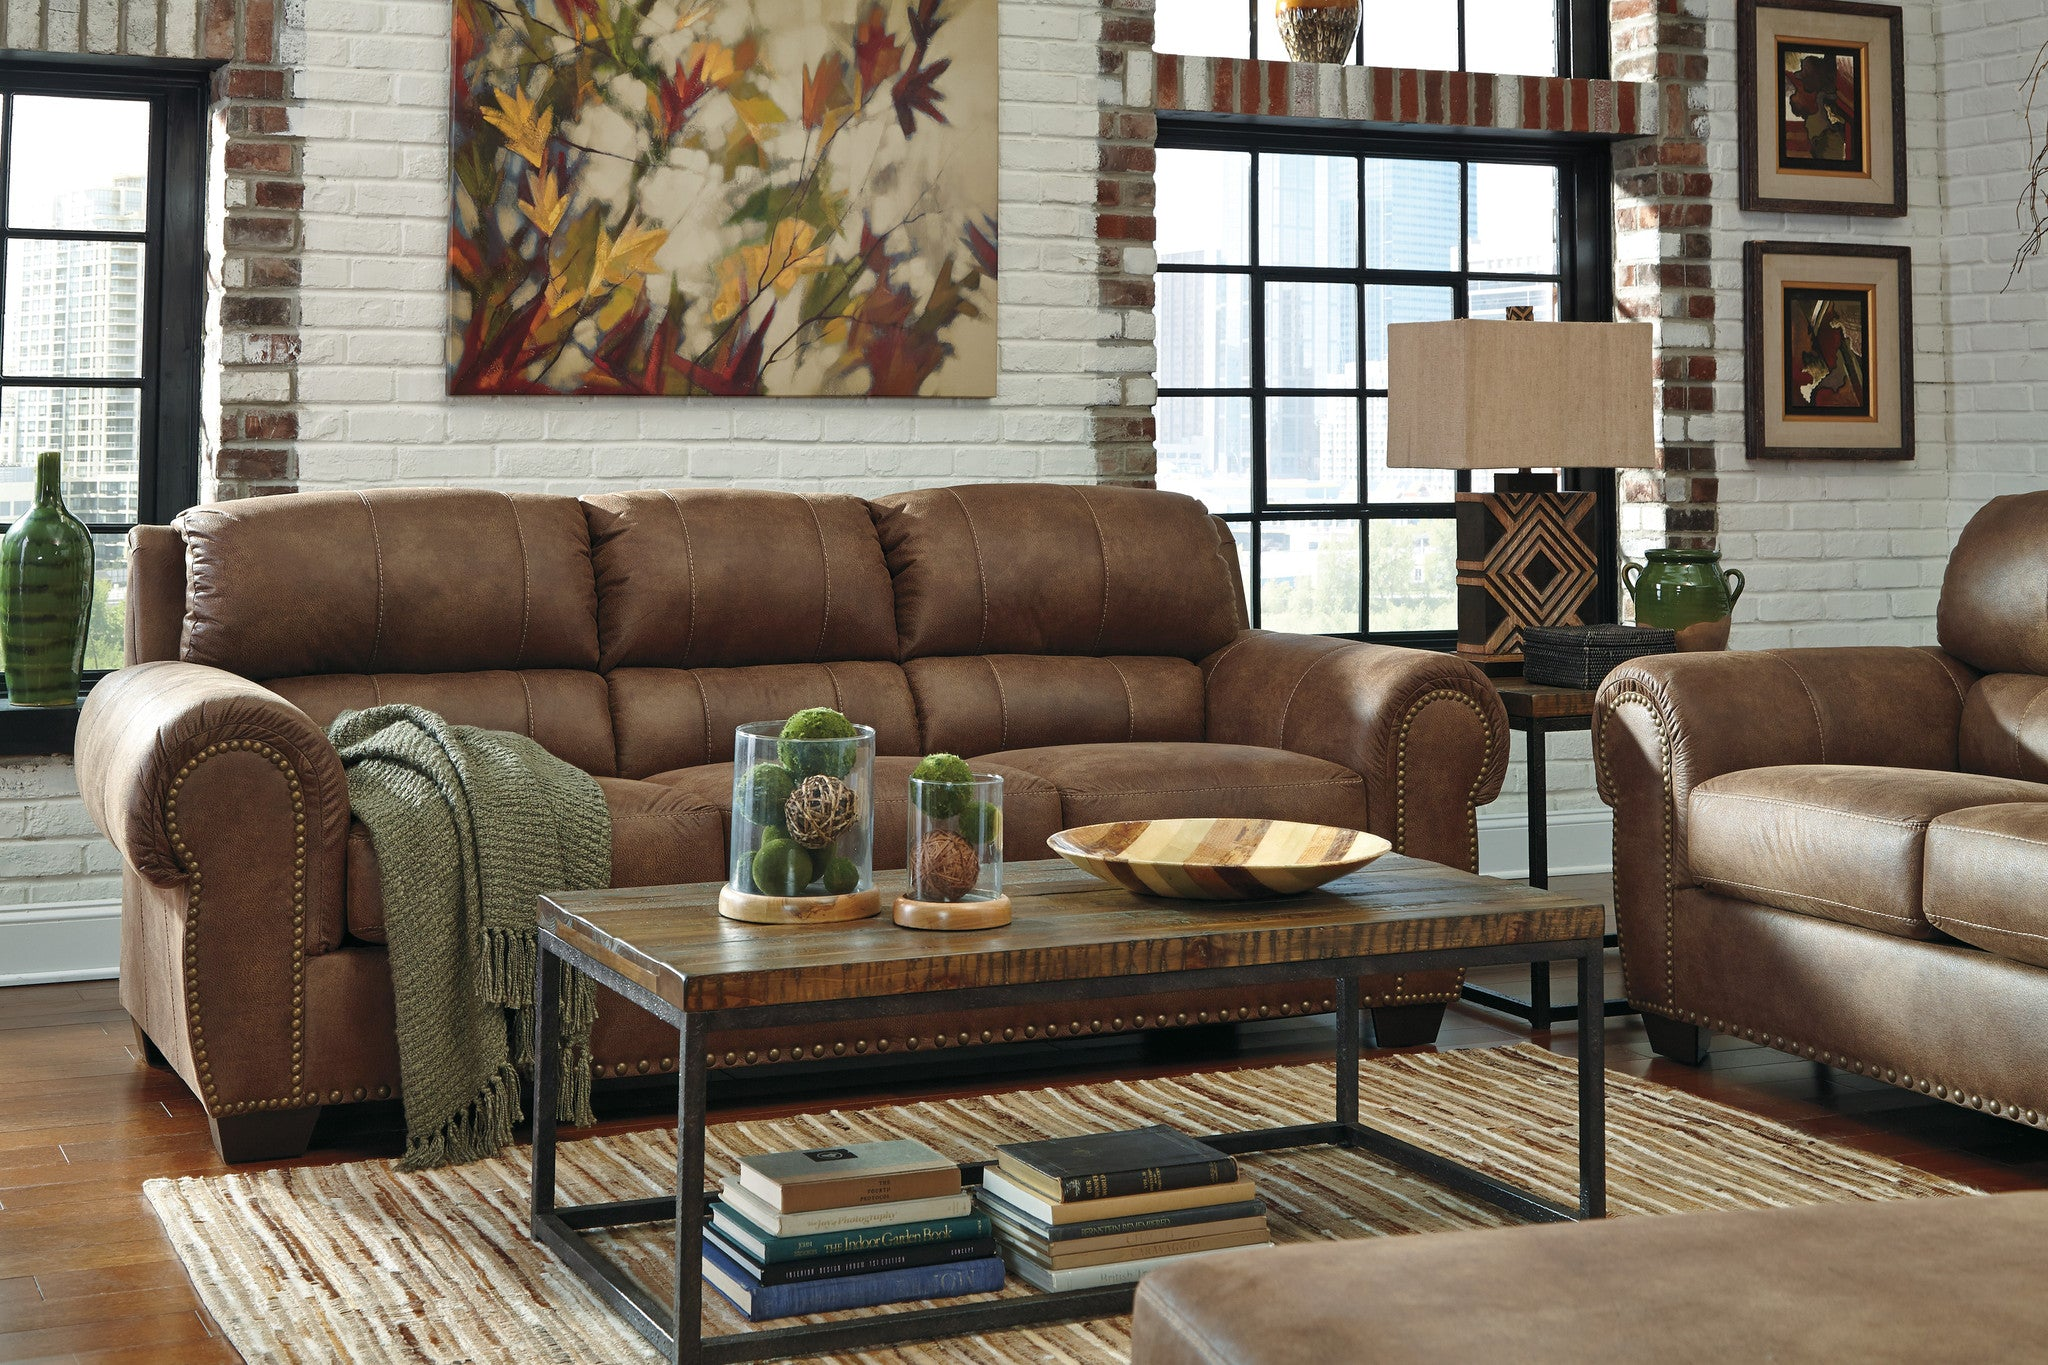 Ashley Burnsville 2PC Living Room Set Ashley Burnsville 2PC Living Room Set